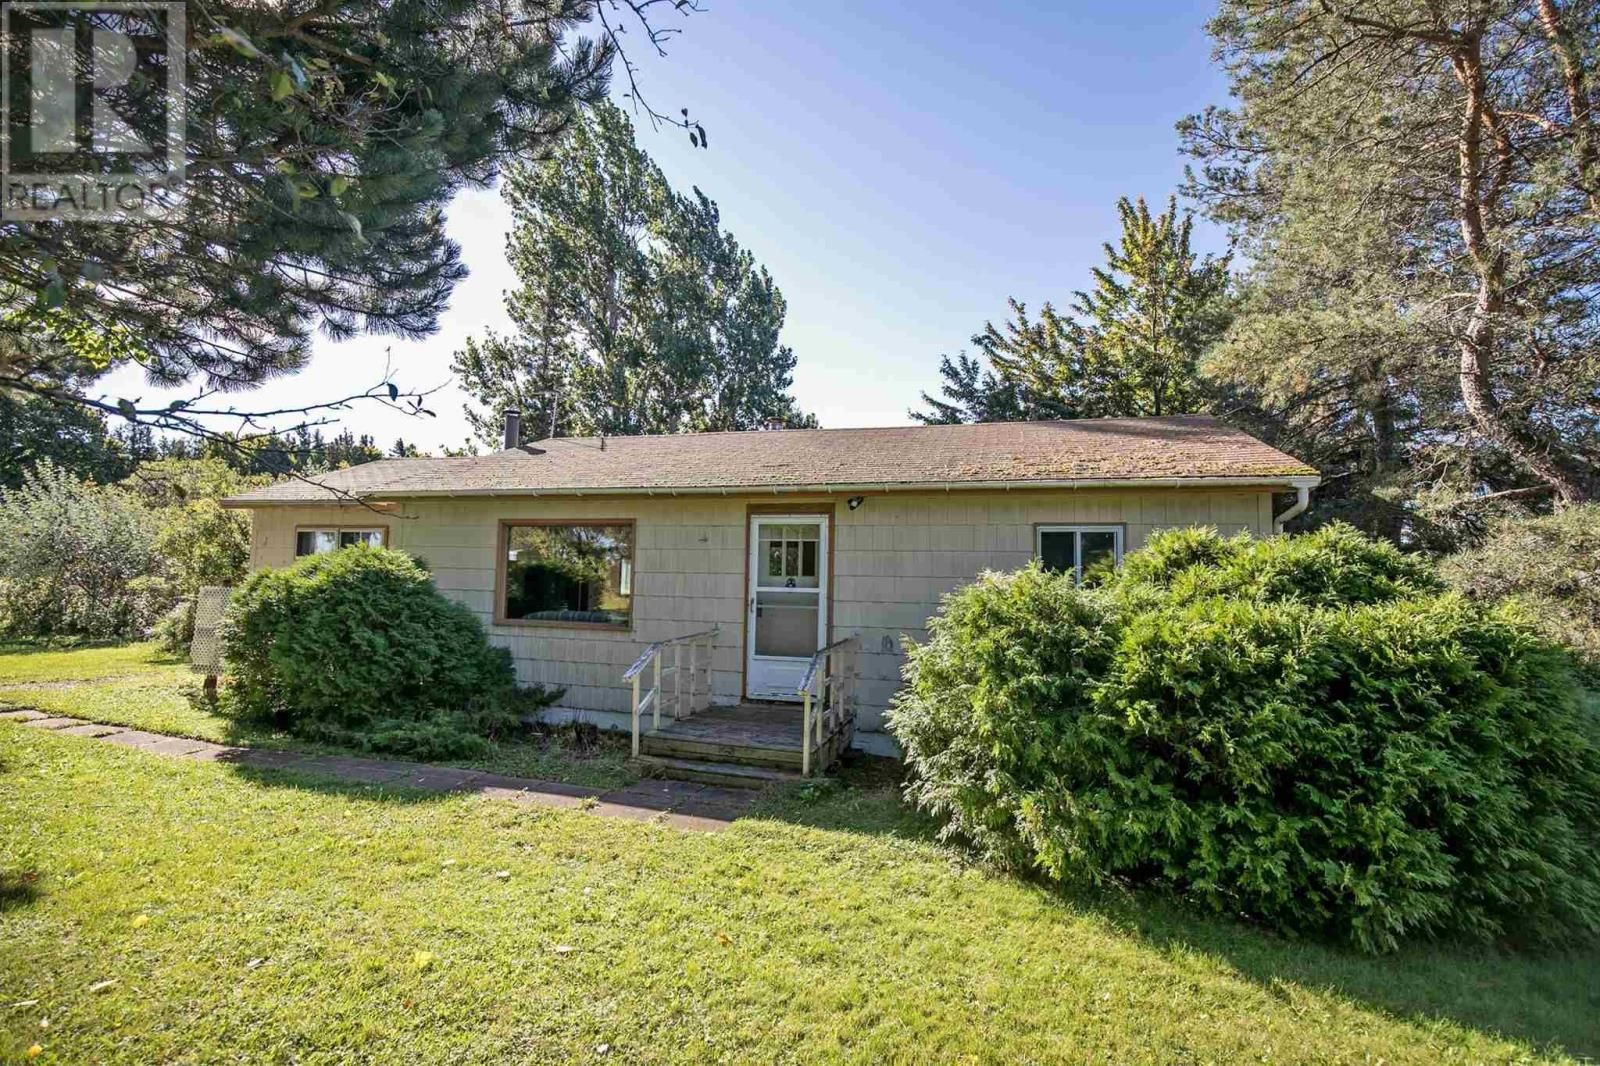 Main Photo: 5838 Highway 366 in Lorneville: Recreational for sale : MLS®# 202125238